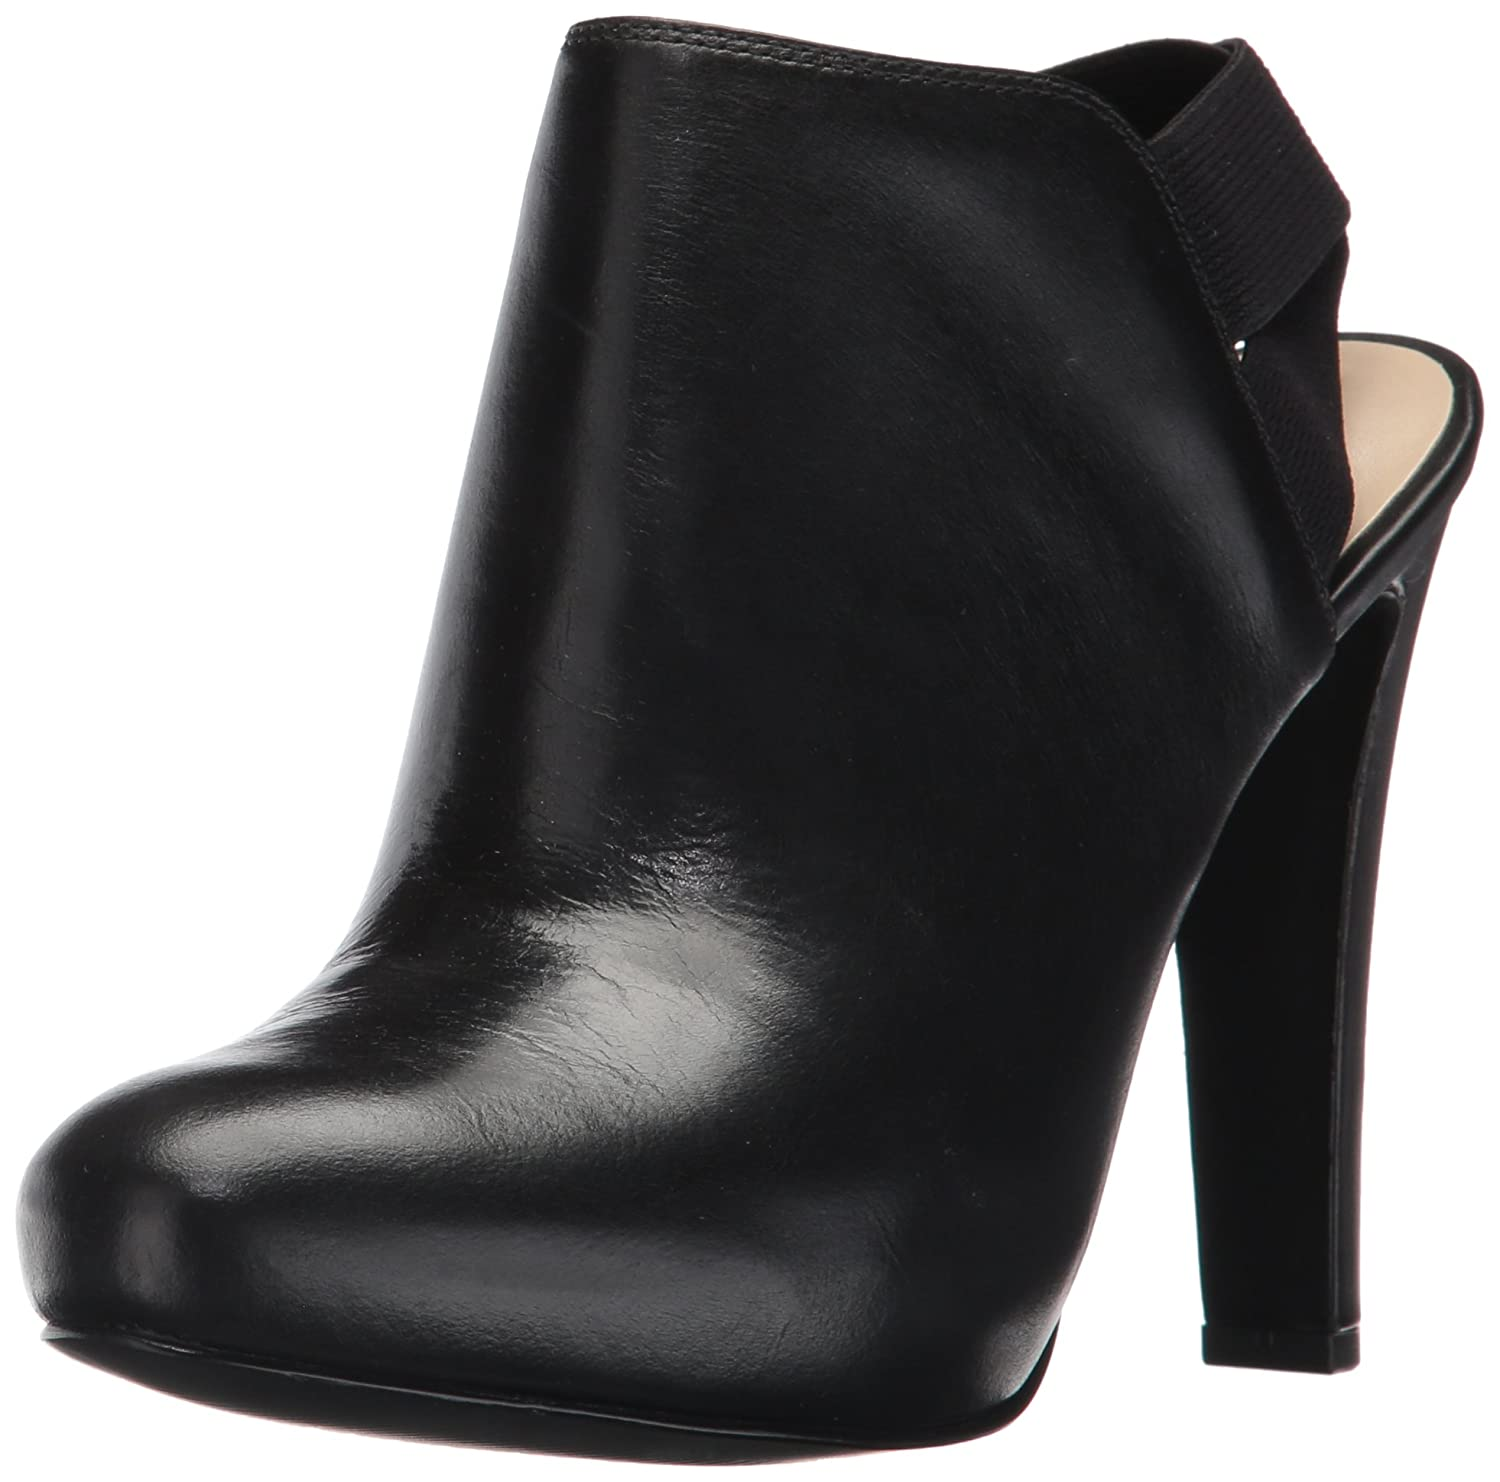 Nine West Women's Burke Ankle Boot B01MYU5ITH 9.5 B(M) US|Black Leather